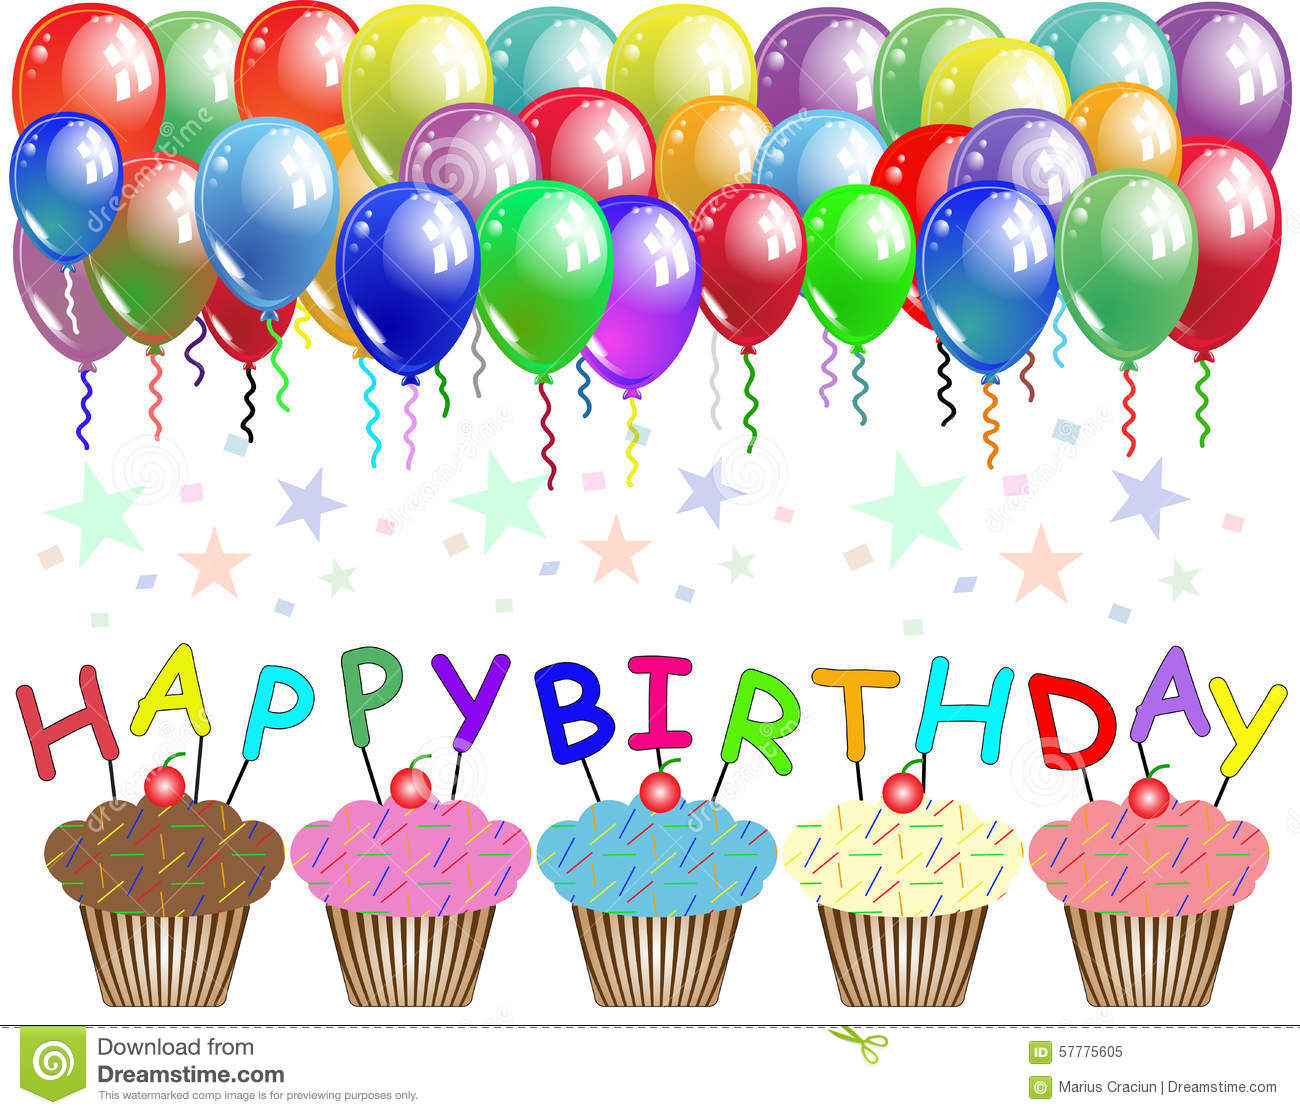 happy birthday posters free ; happy-birthday-poster-card-balloons-cupcakes-57775605